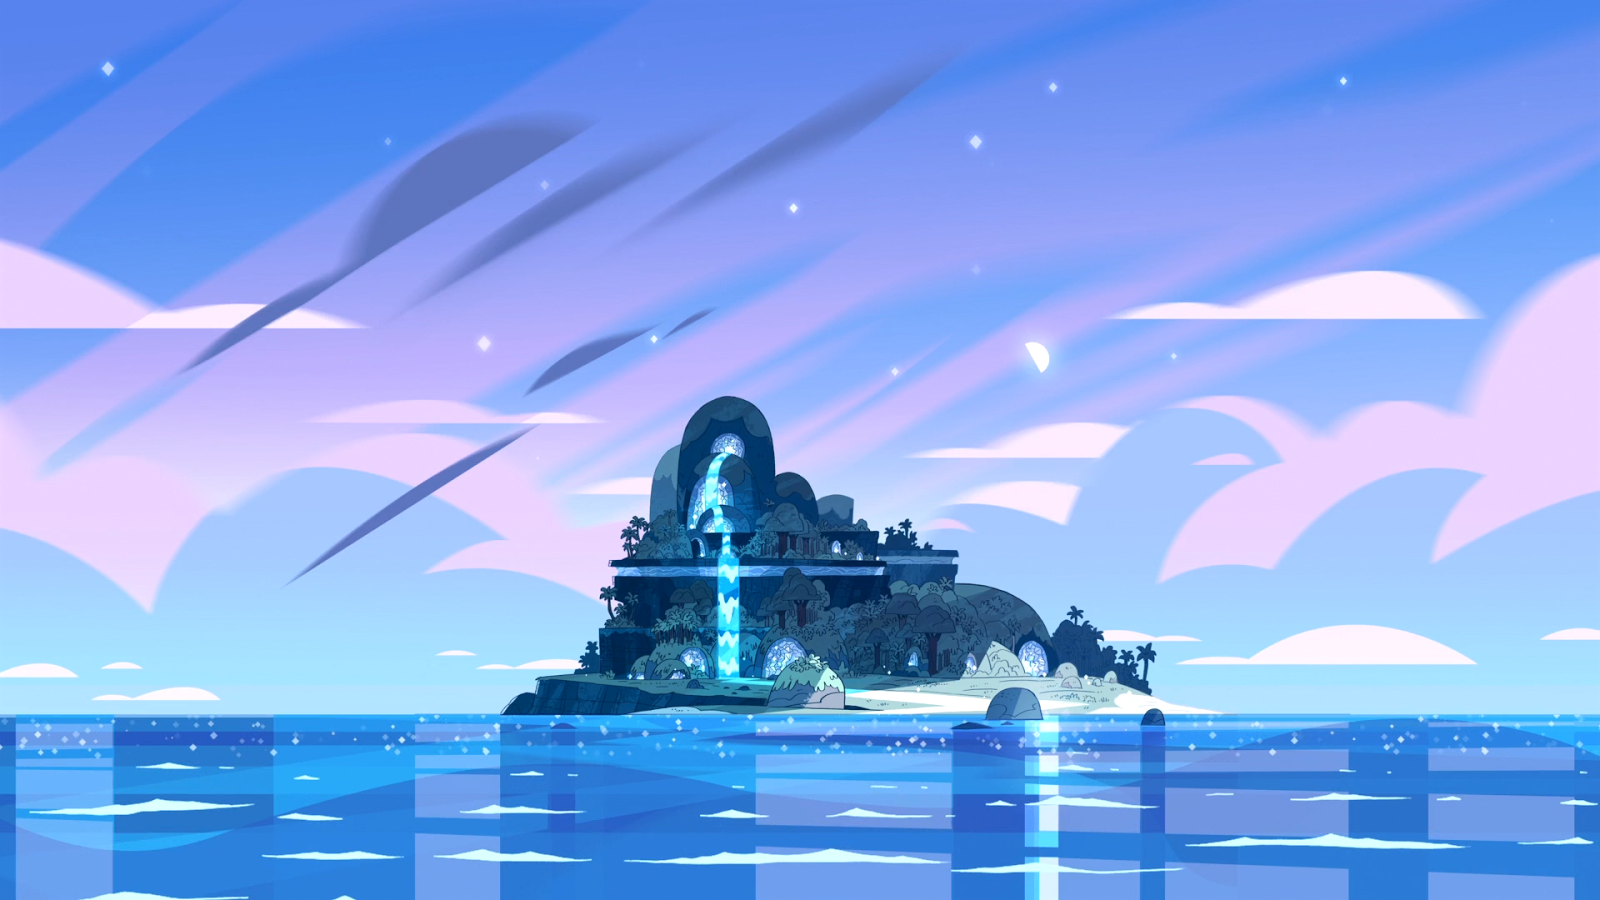 Top 50 Steven Universe Wallpapers 2017